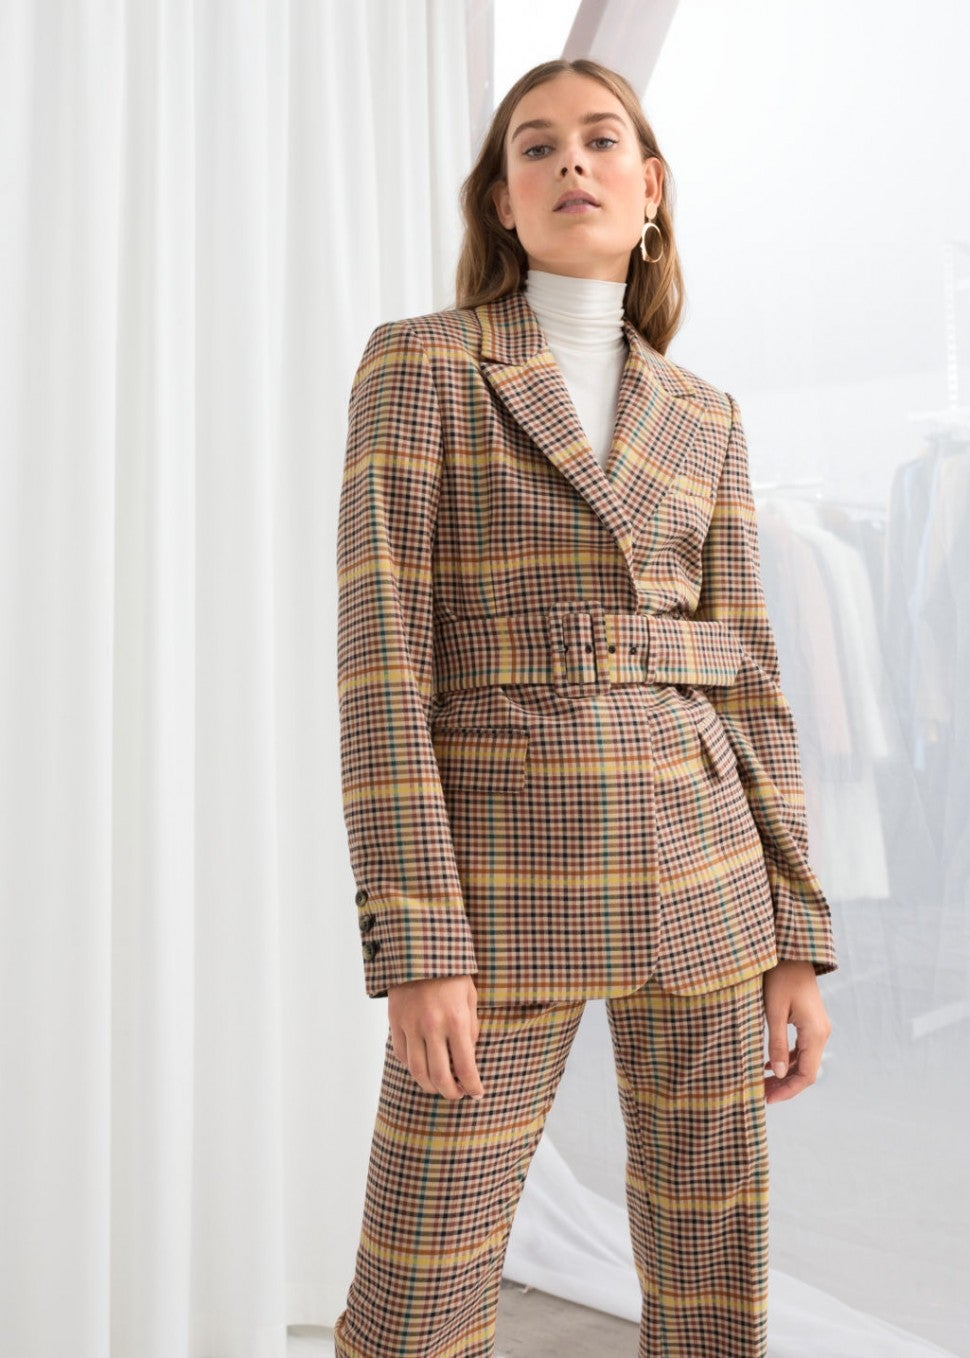 & Other Stories belted plaid blazer